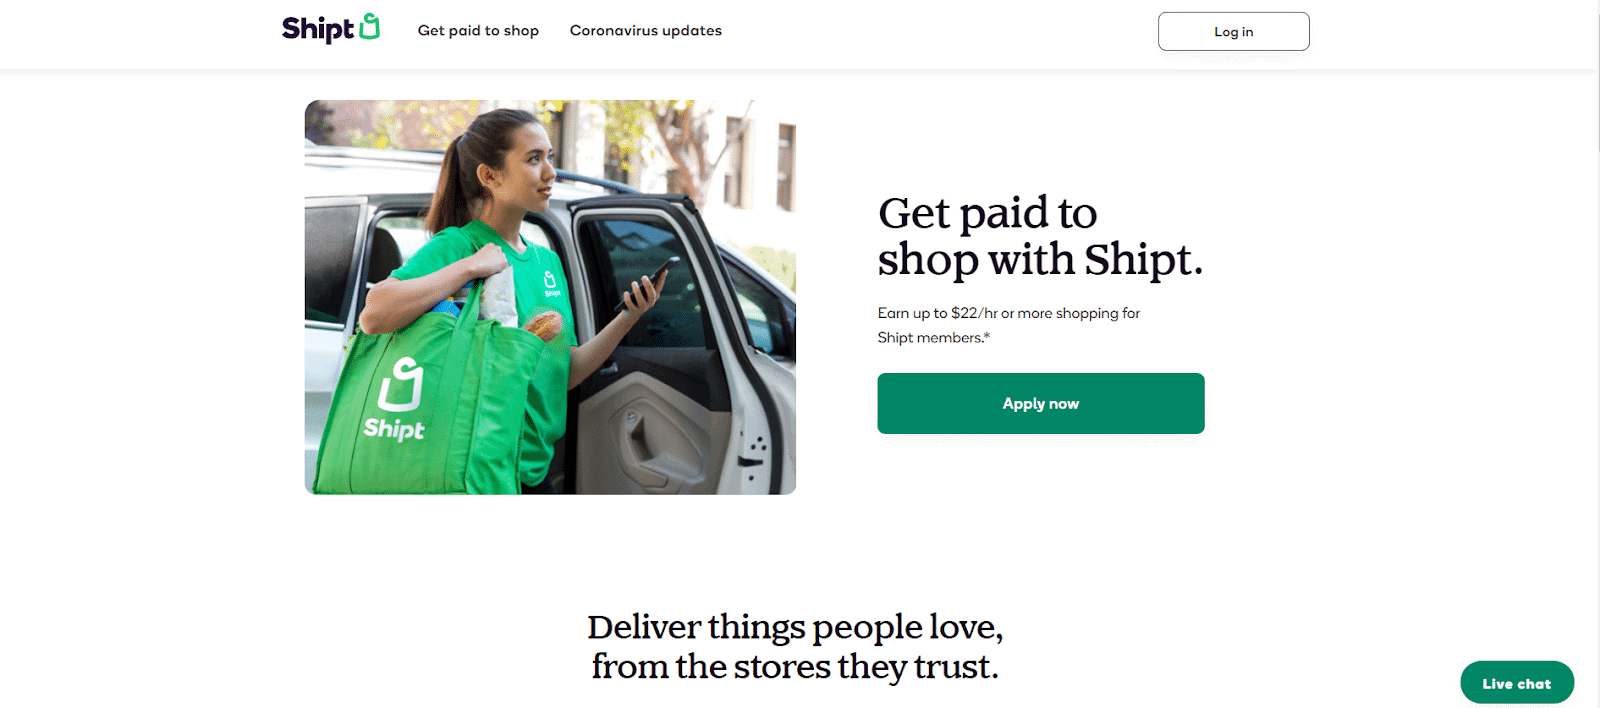 Shipt shopper pay: The page to sign up to be a shopper